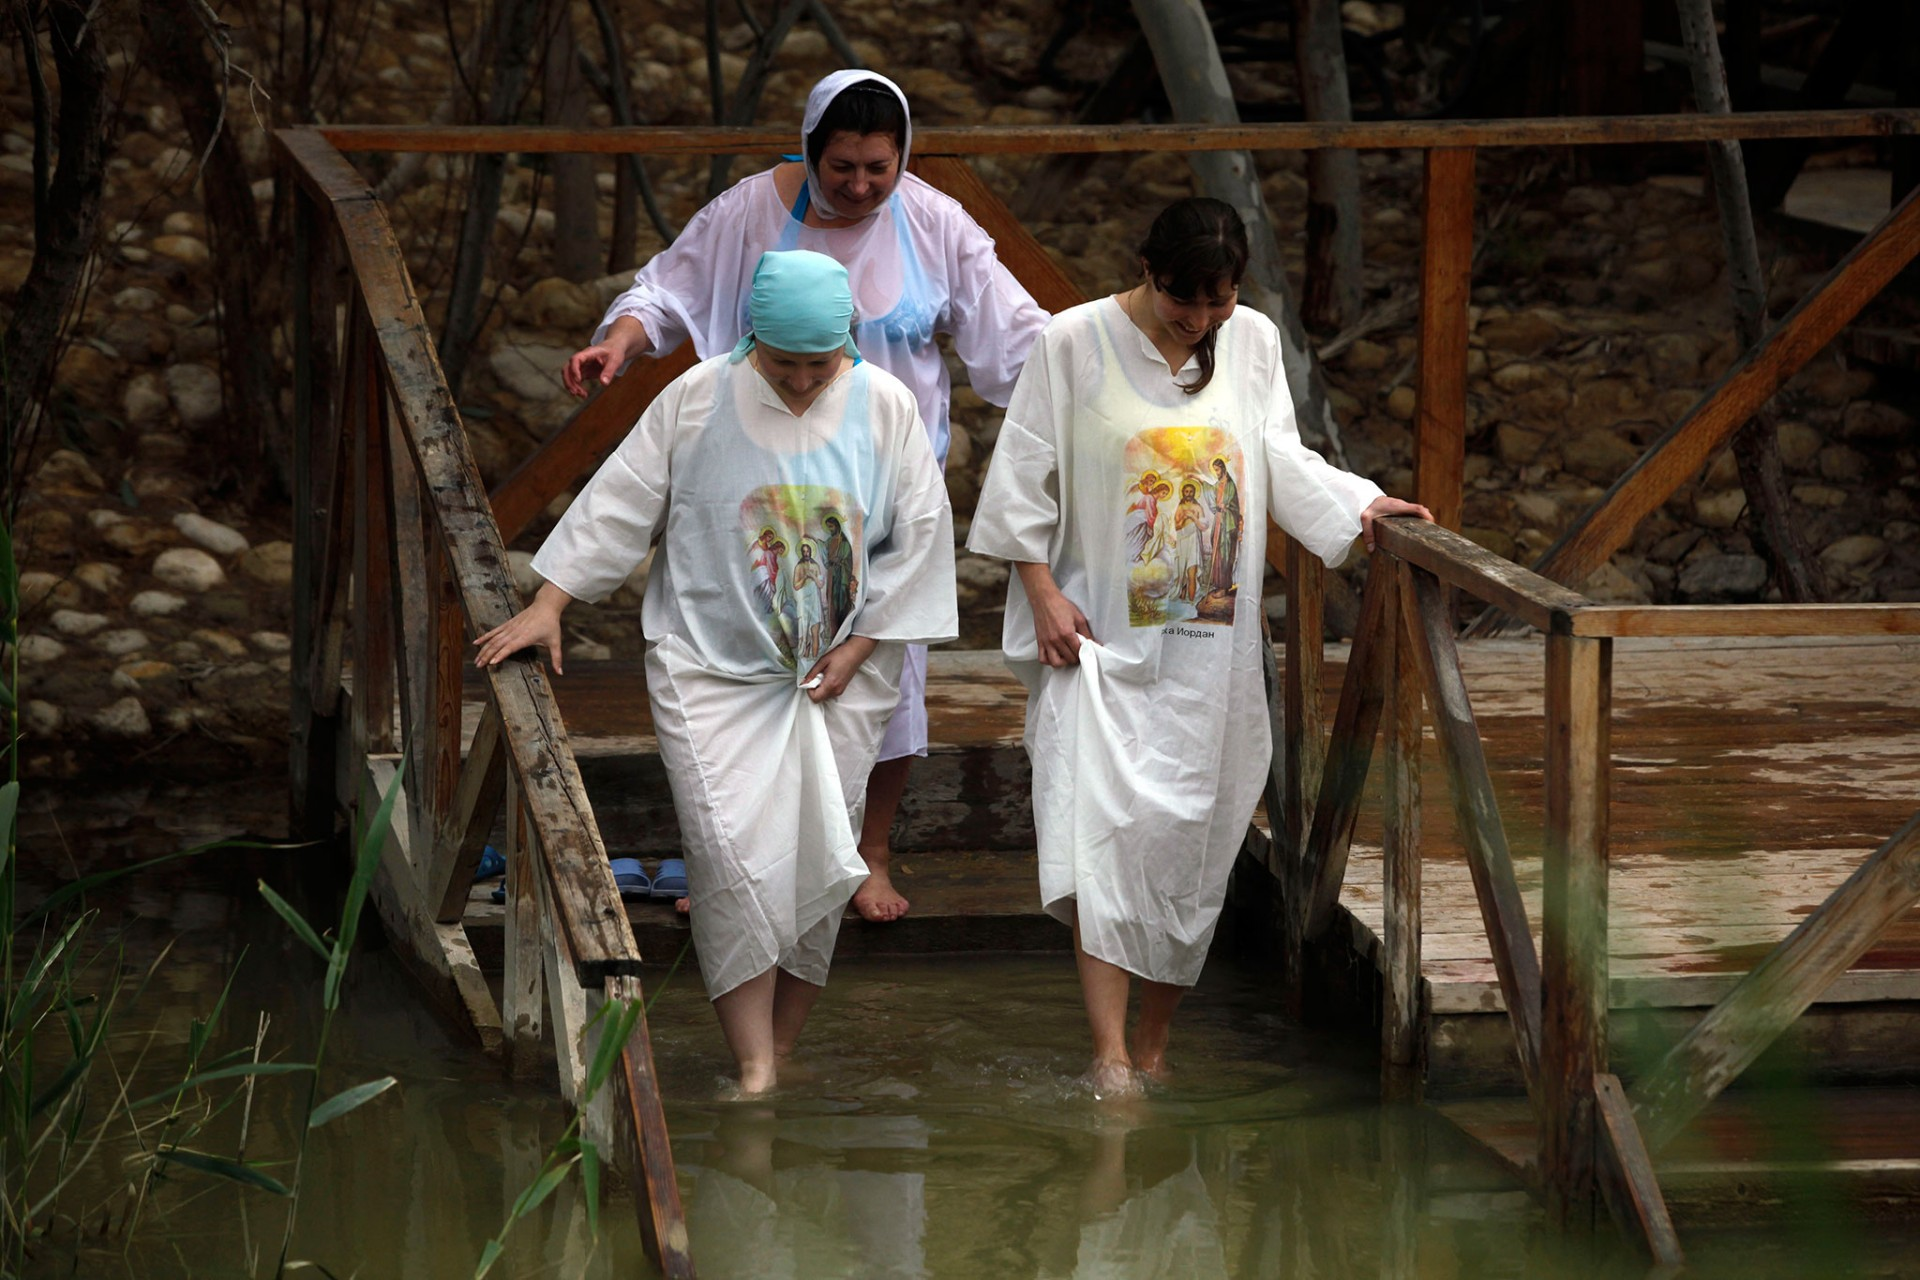 Epiphany celebrations in the Jordan River, Qasir al-Yahud 2012